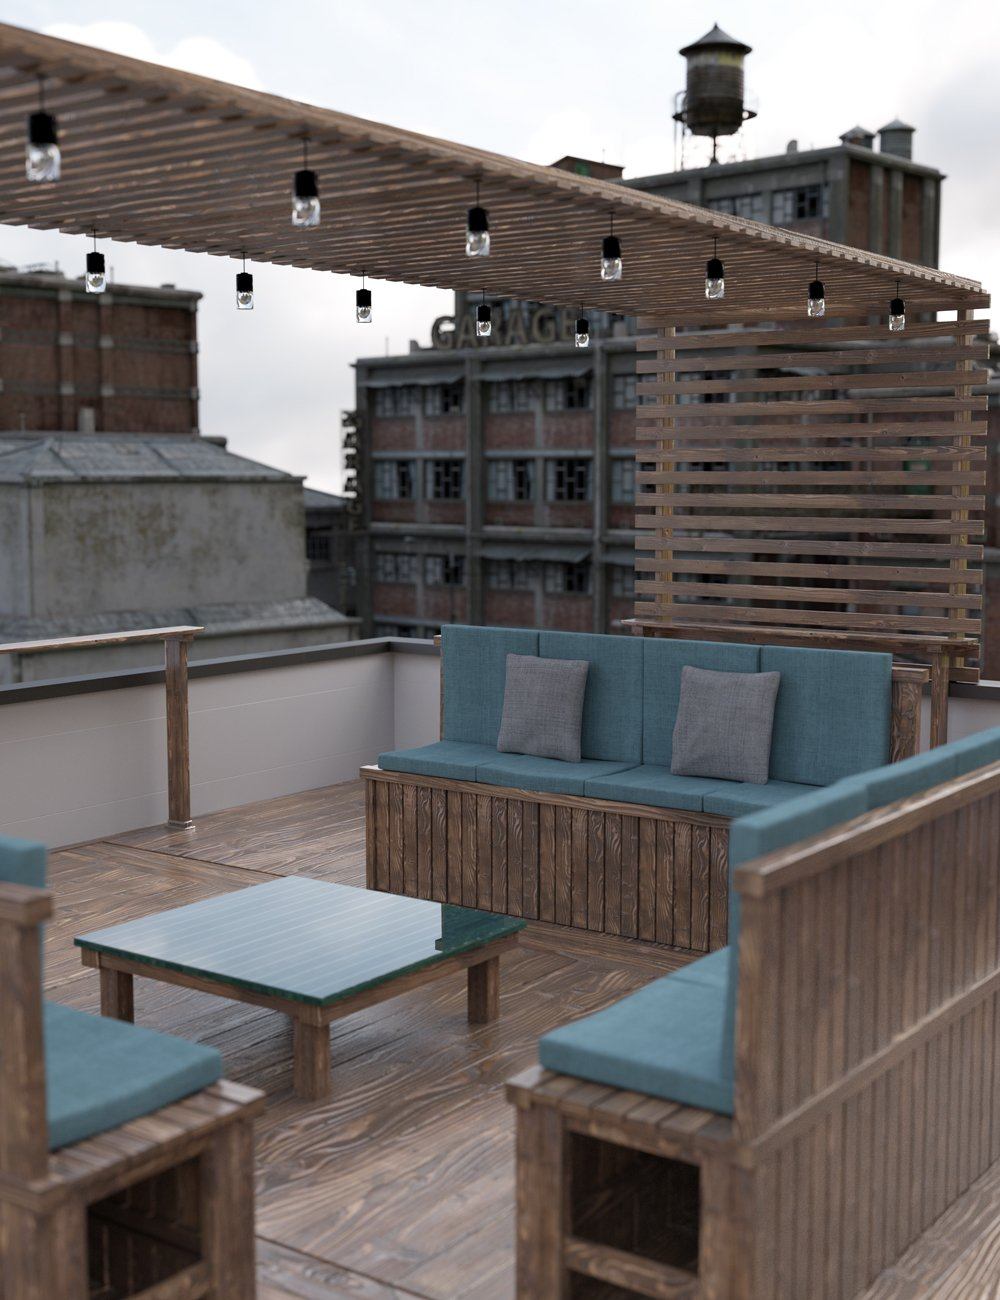 Rooftop Terrace Lounge by: Moonscape Graphics, 3D Models by Daz 3D